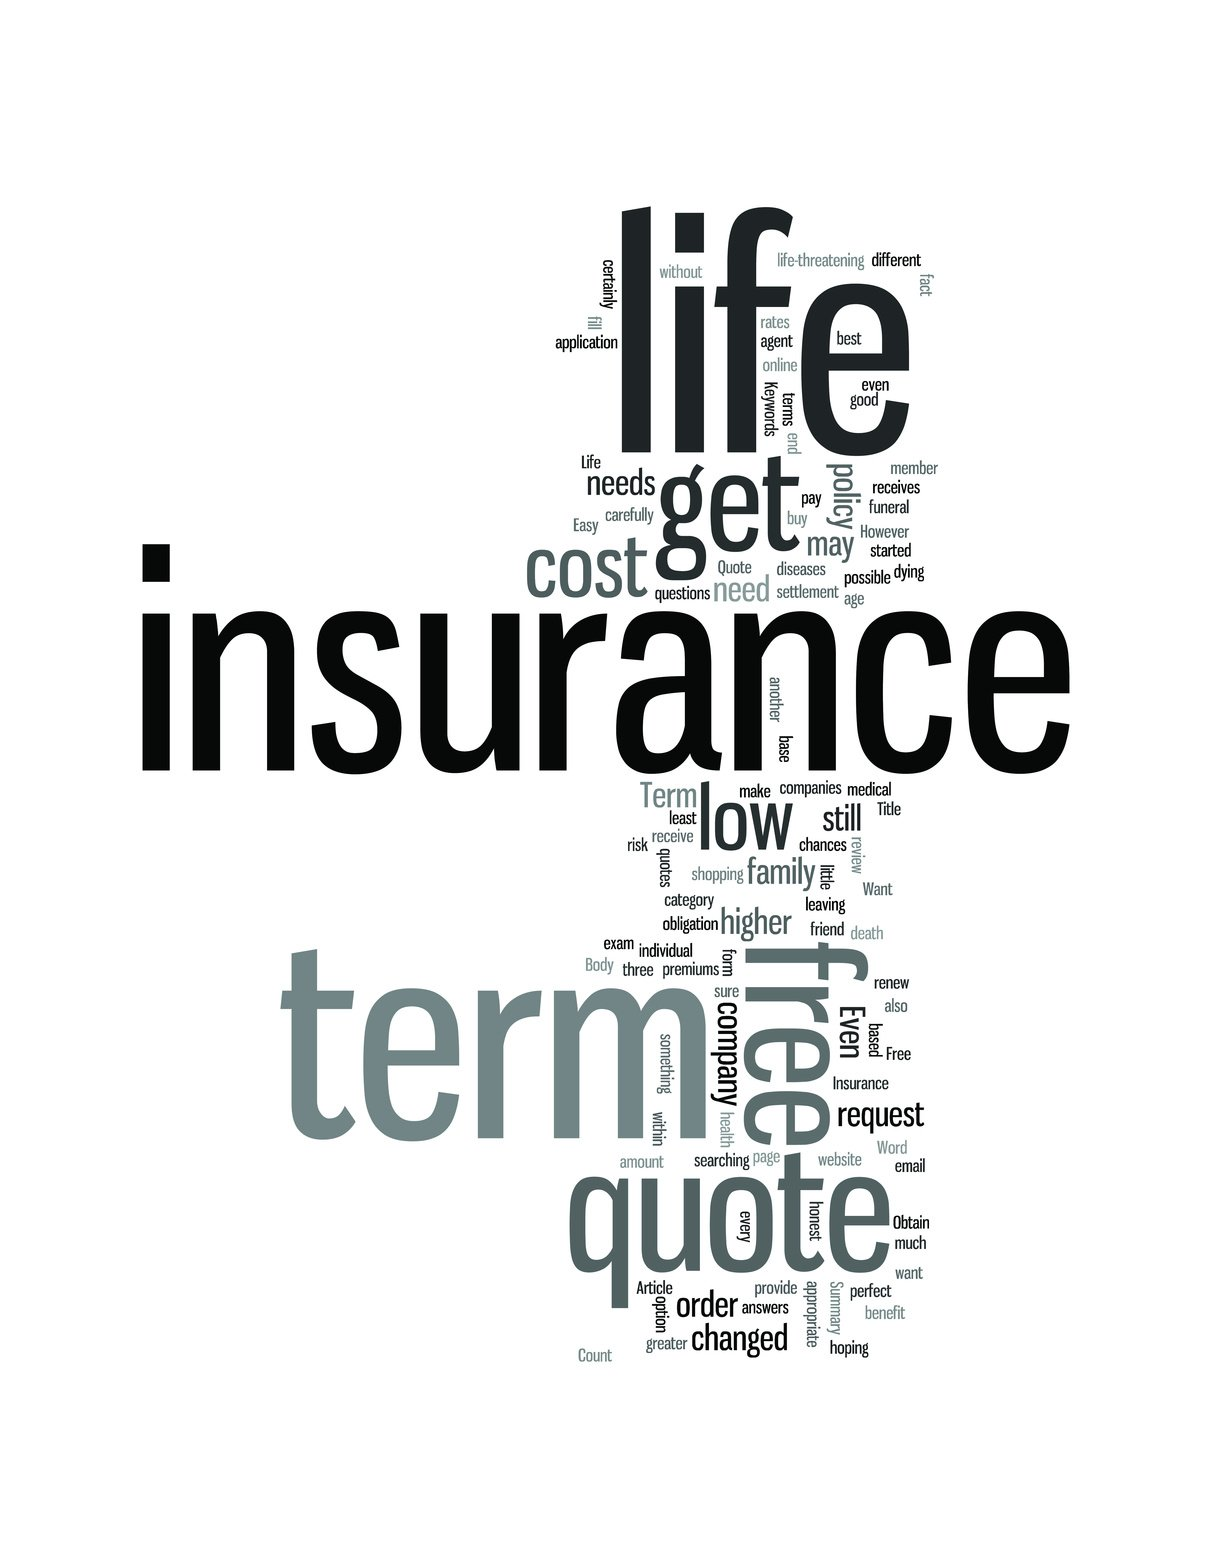 Health Insurance Quotes Ct: Myths About Life Insurance McKinney TX